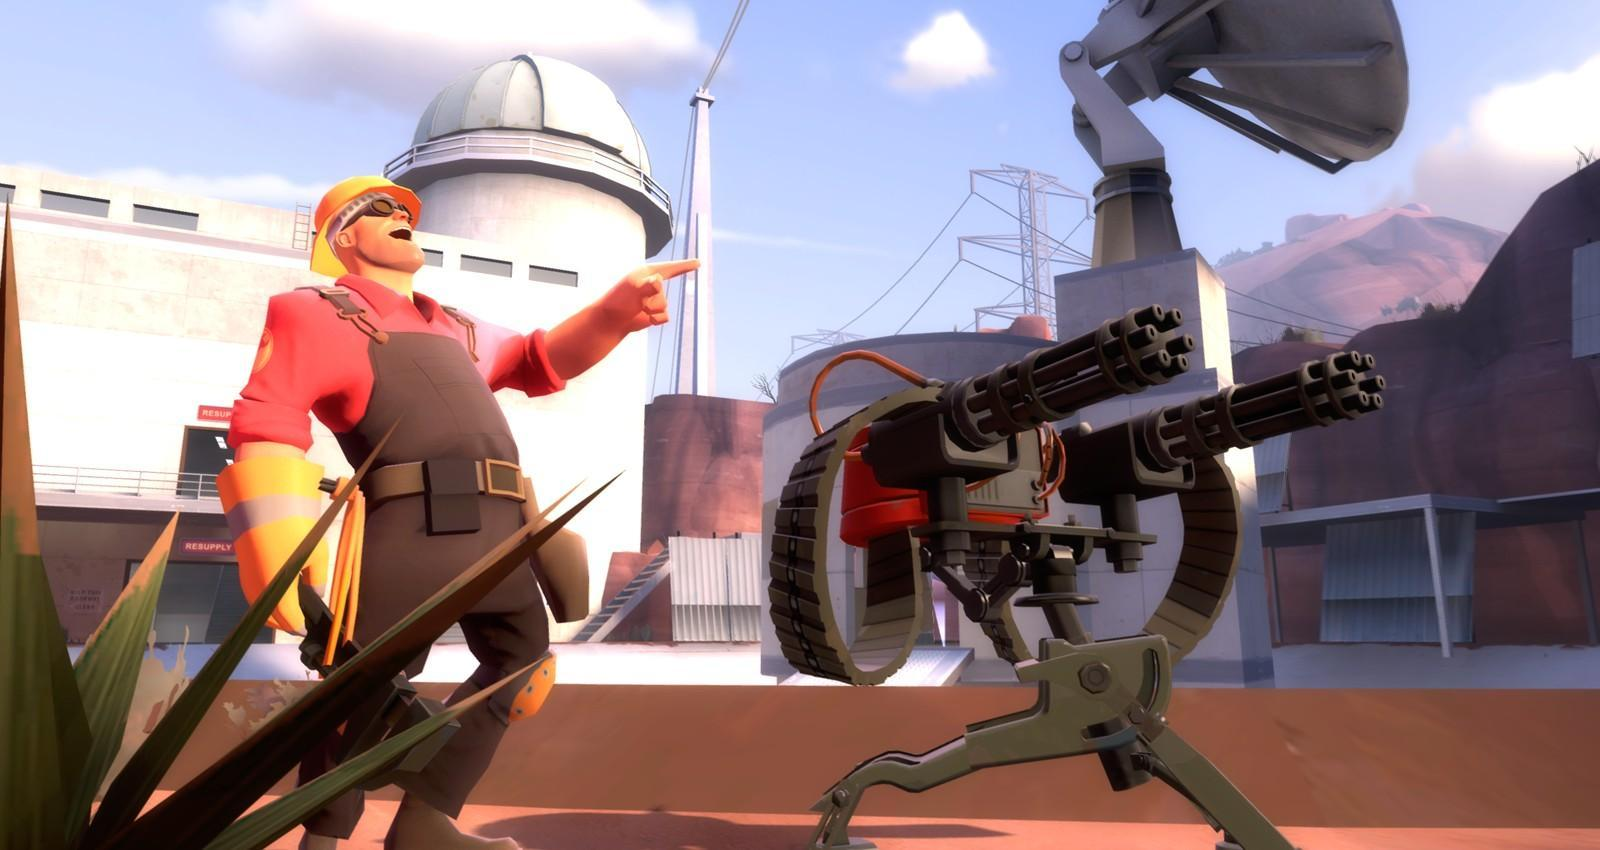 Which TF2 character are you?